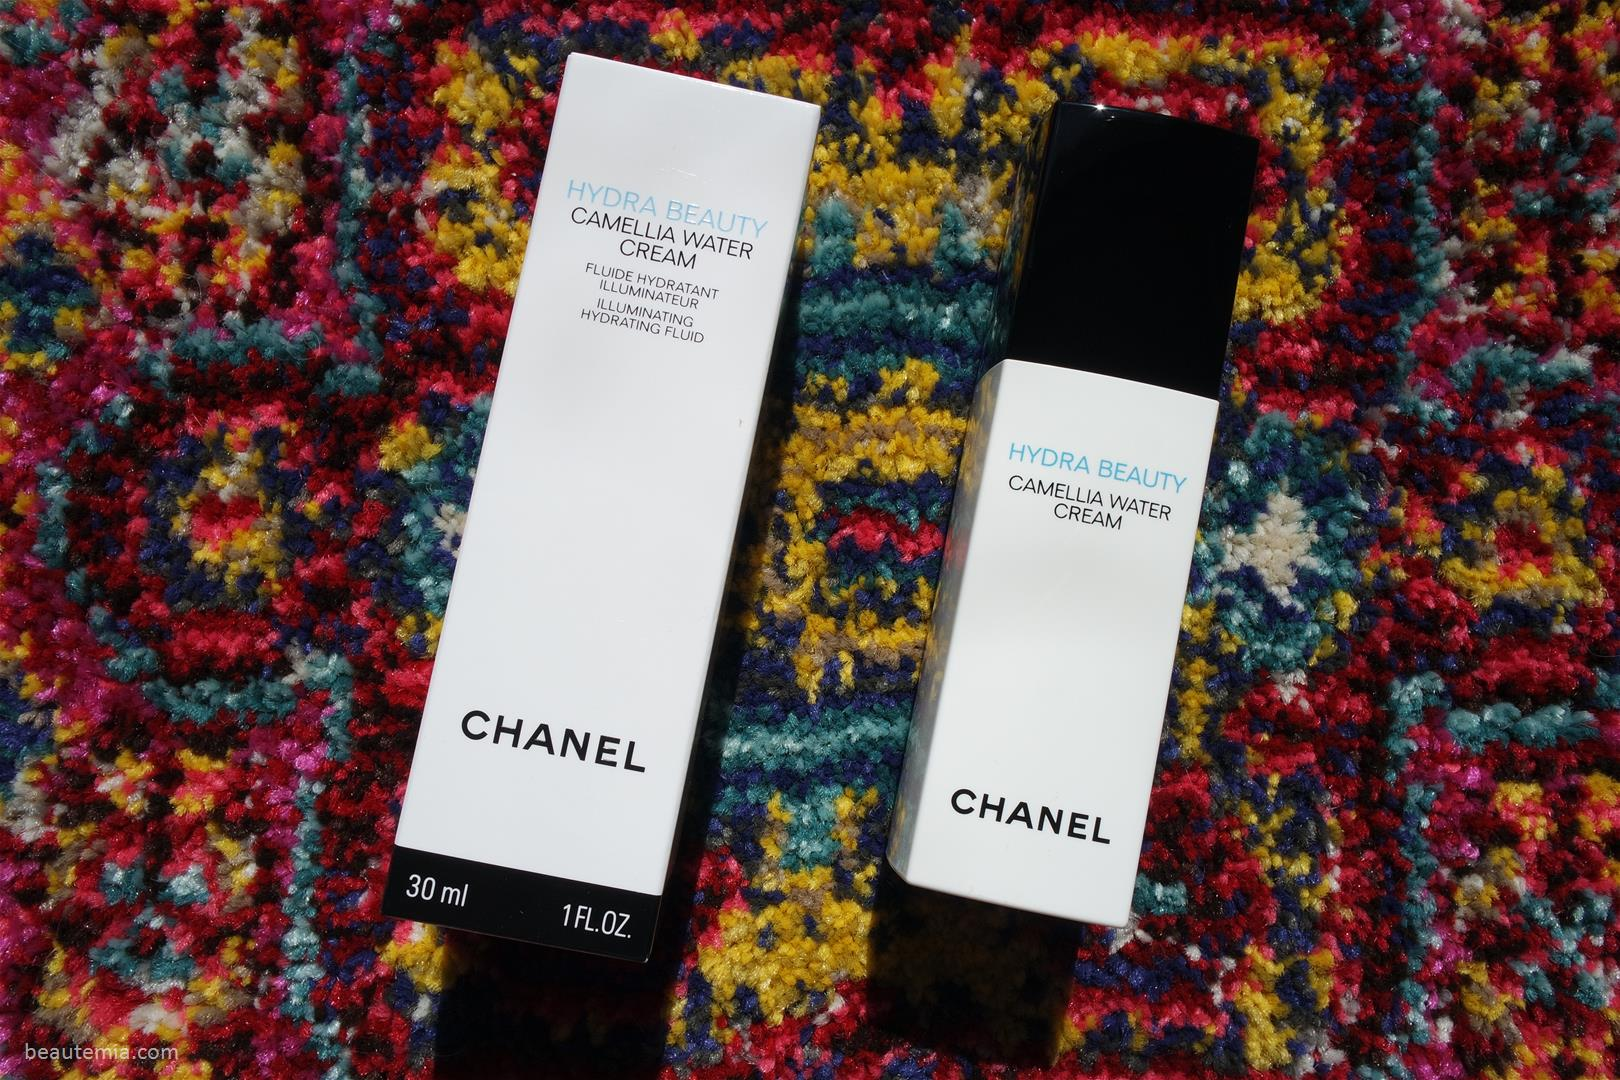 Chanel Review Hydra Beauty Camellia Water Cream Illuminating Hydrating Fluid